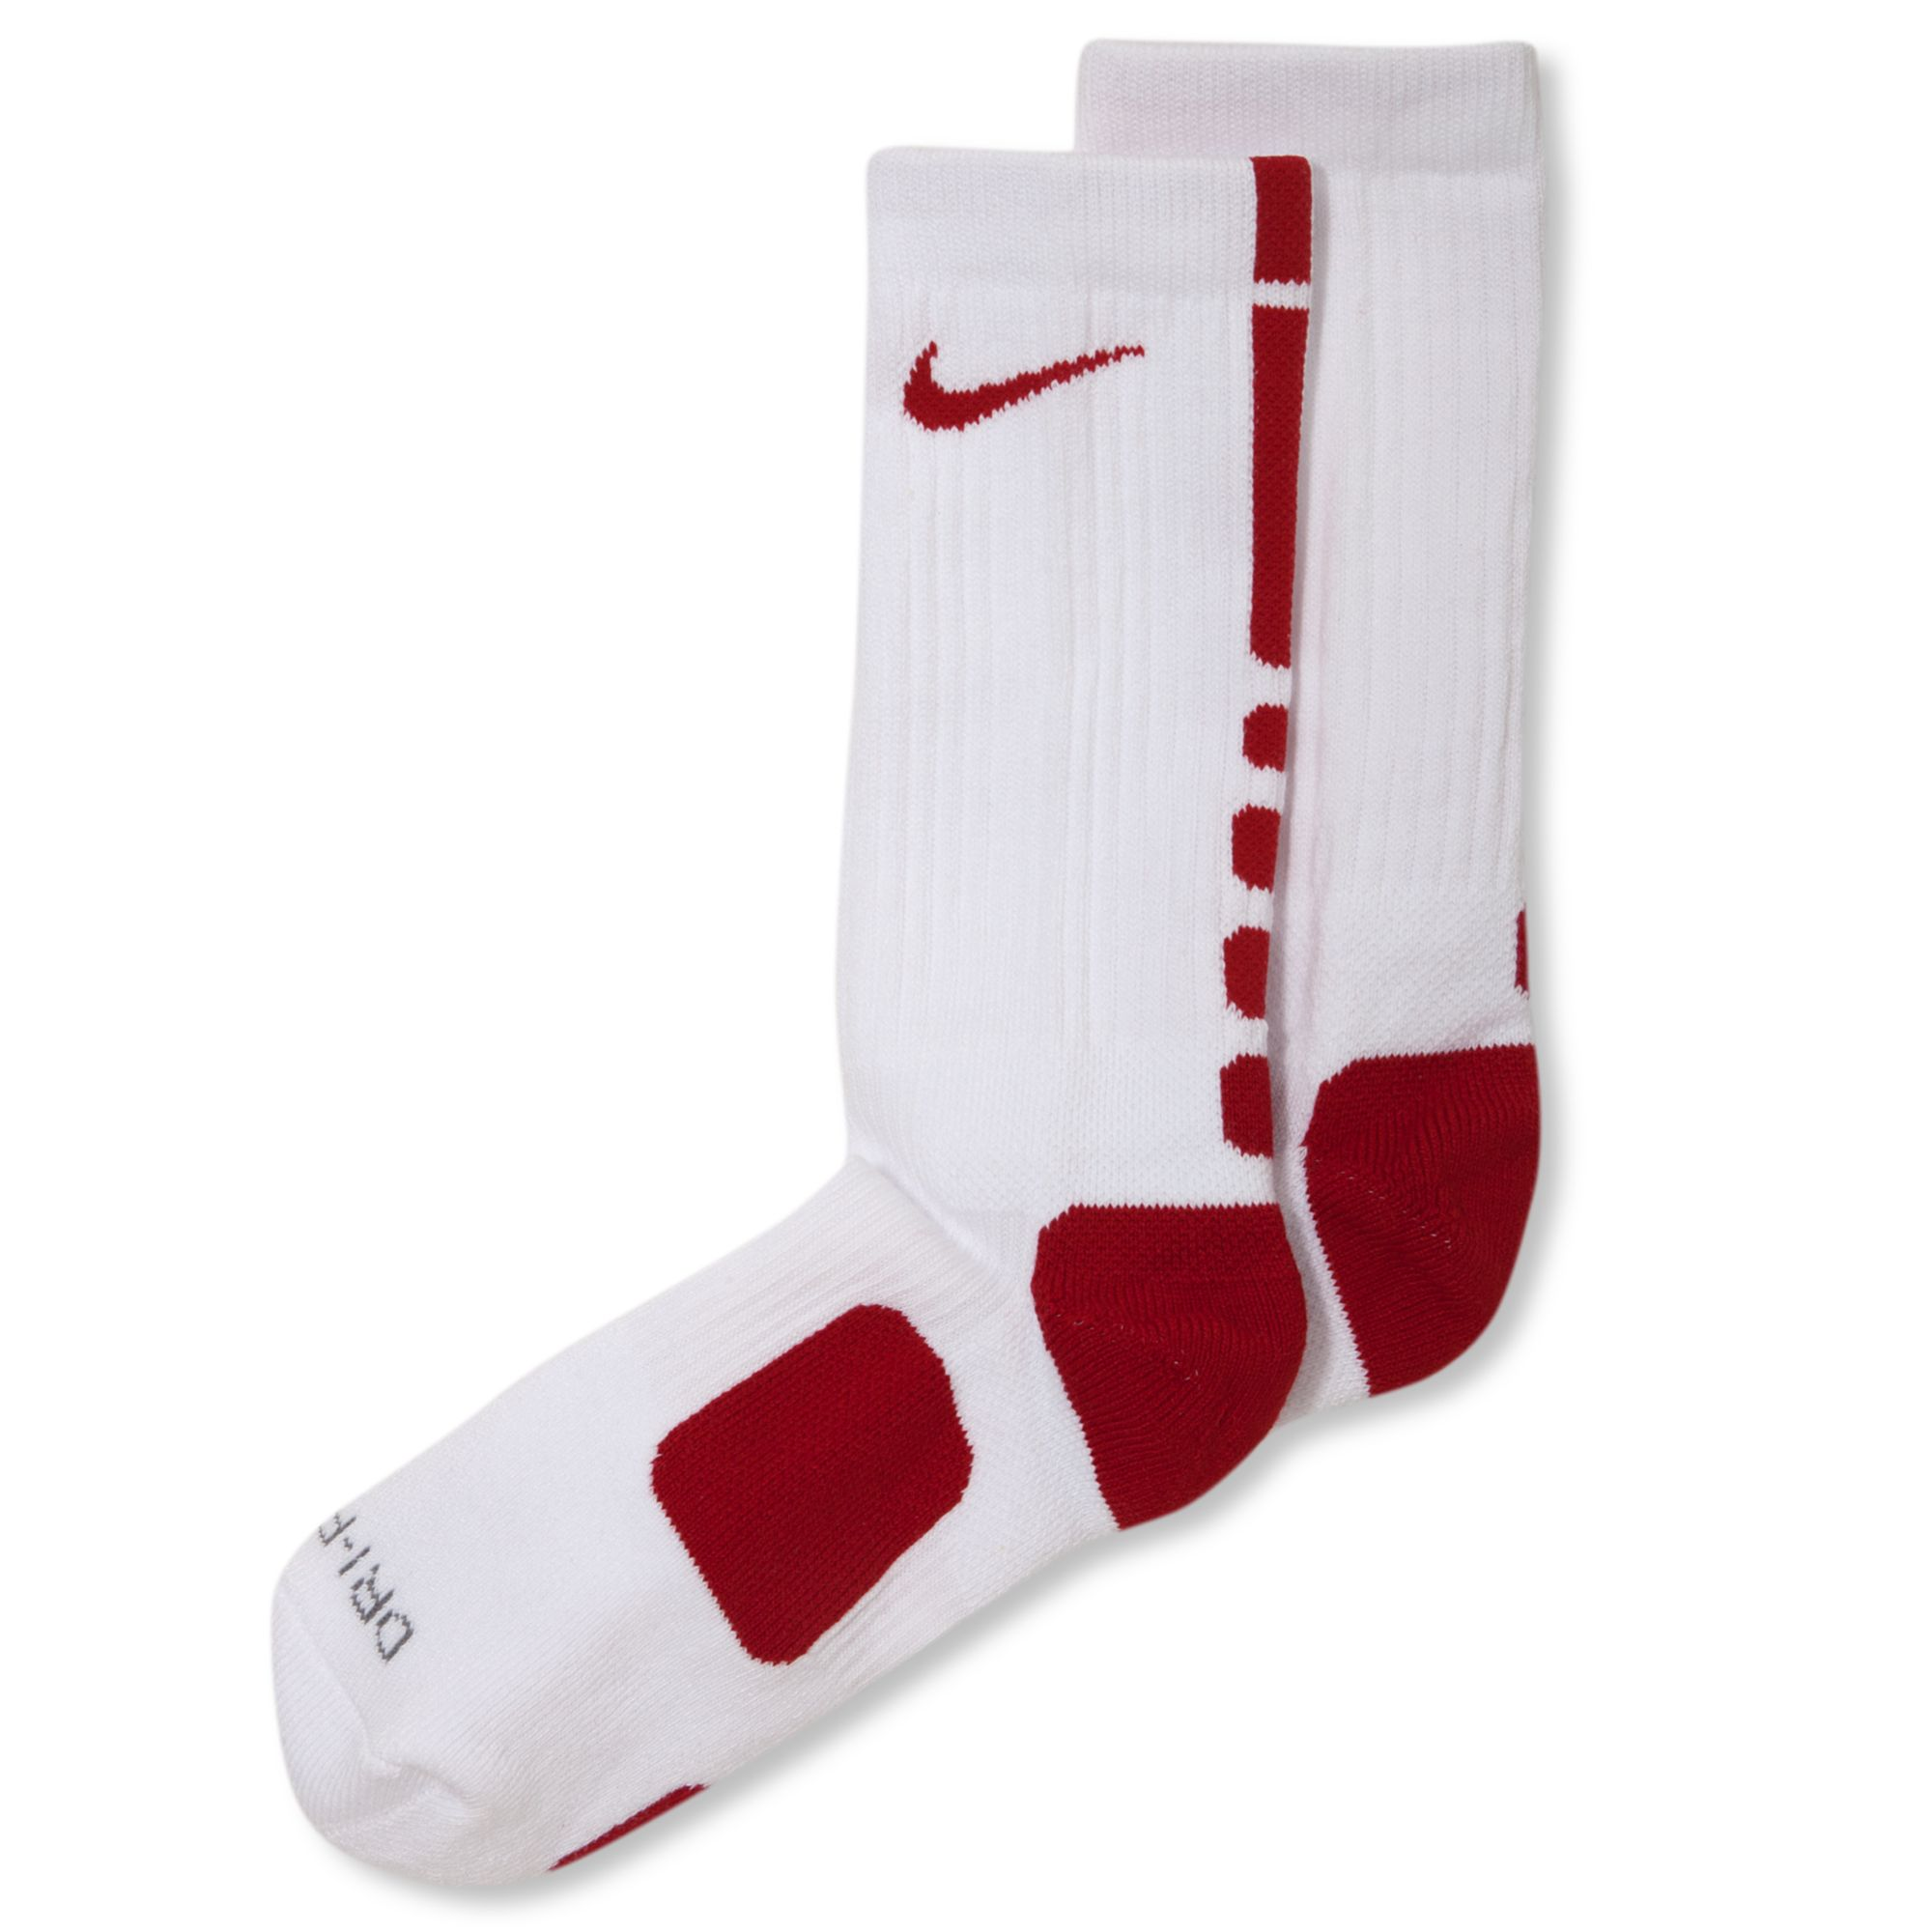 8a1f6141dec Black And White Men S Nike Elite Socks - About Sock Photos